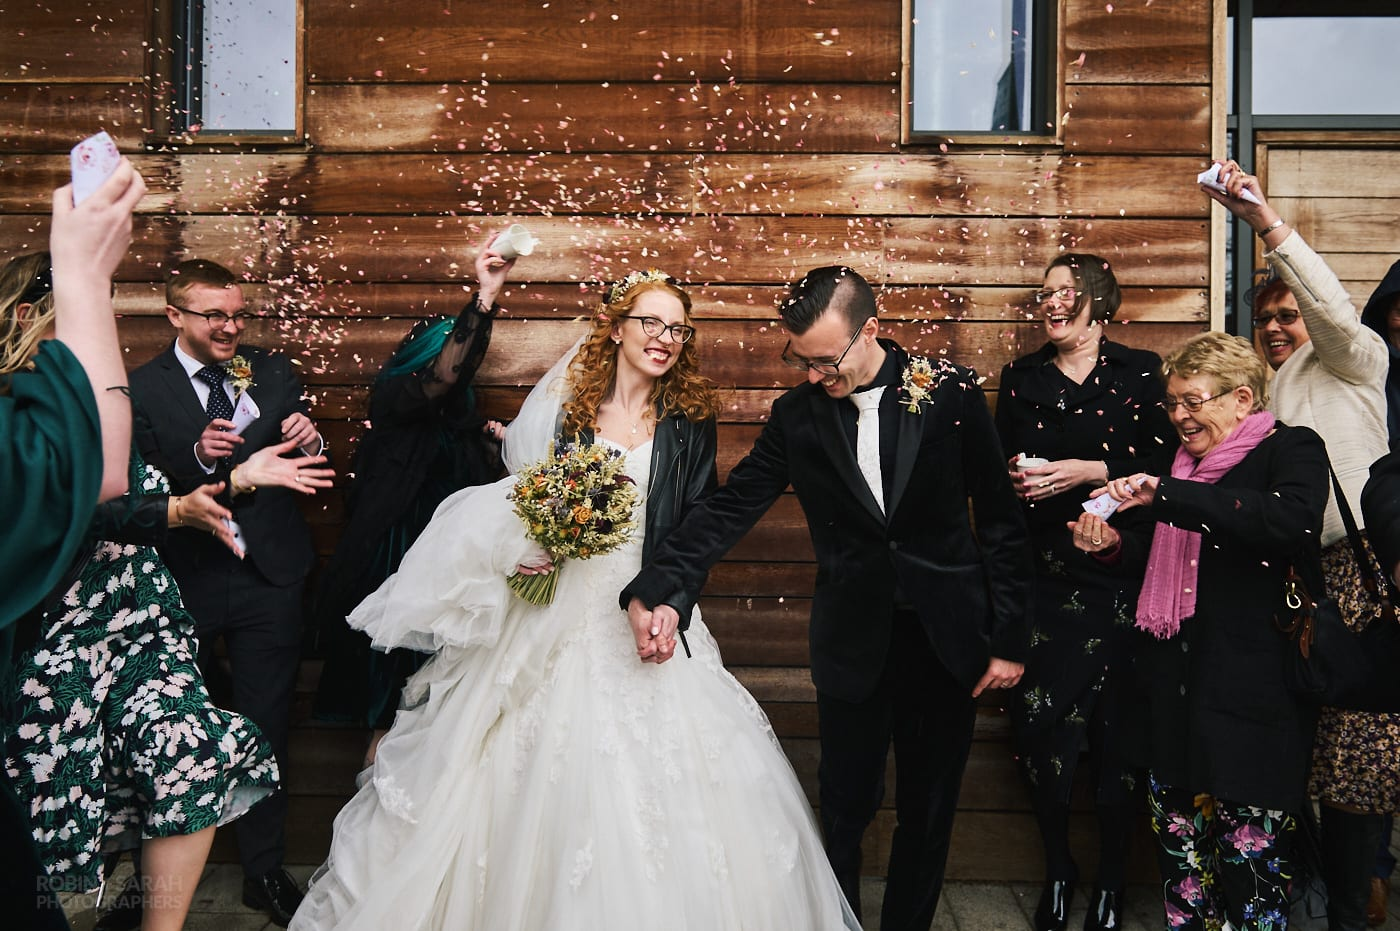 Wedding guests throw confetti over bride and groom outside building on Kelham Island in Sheffield